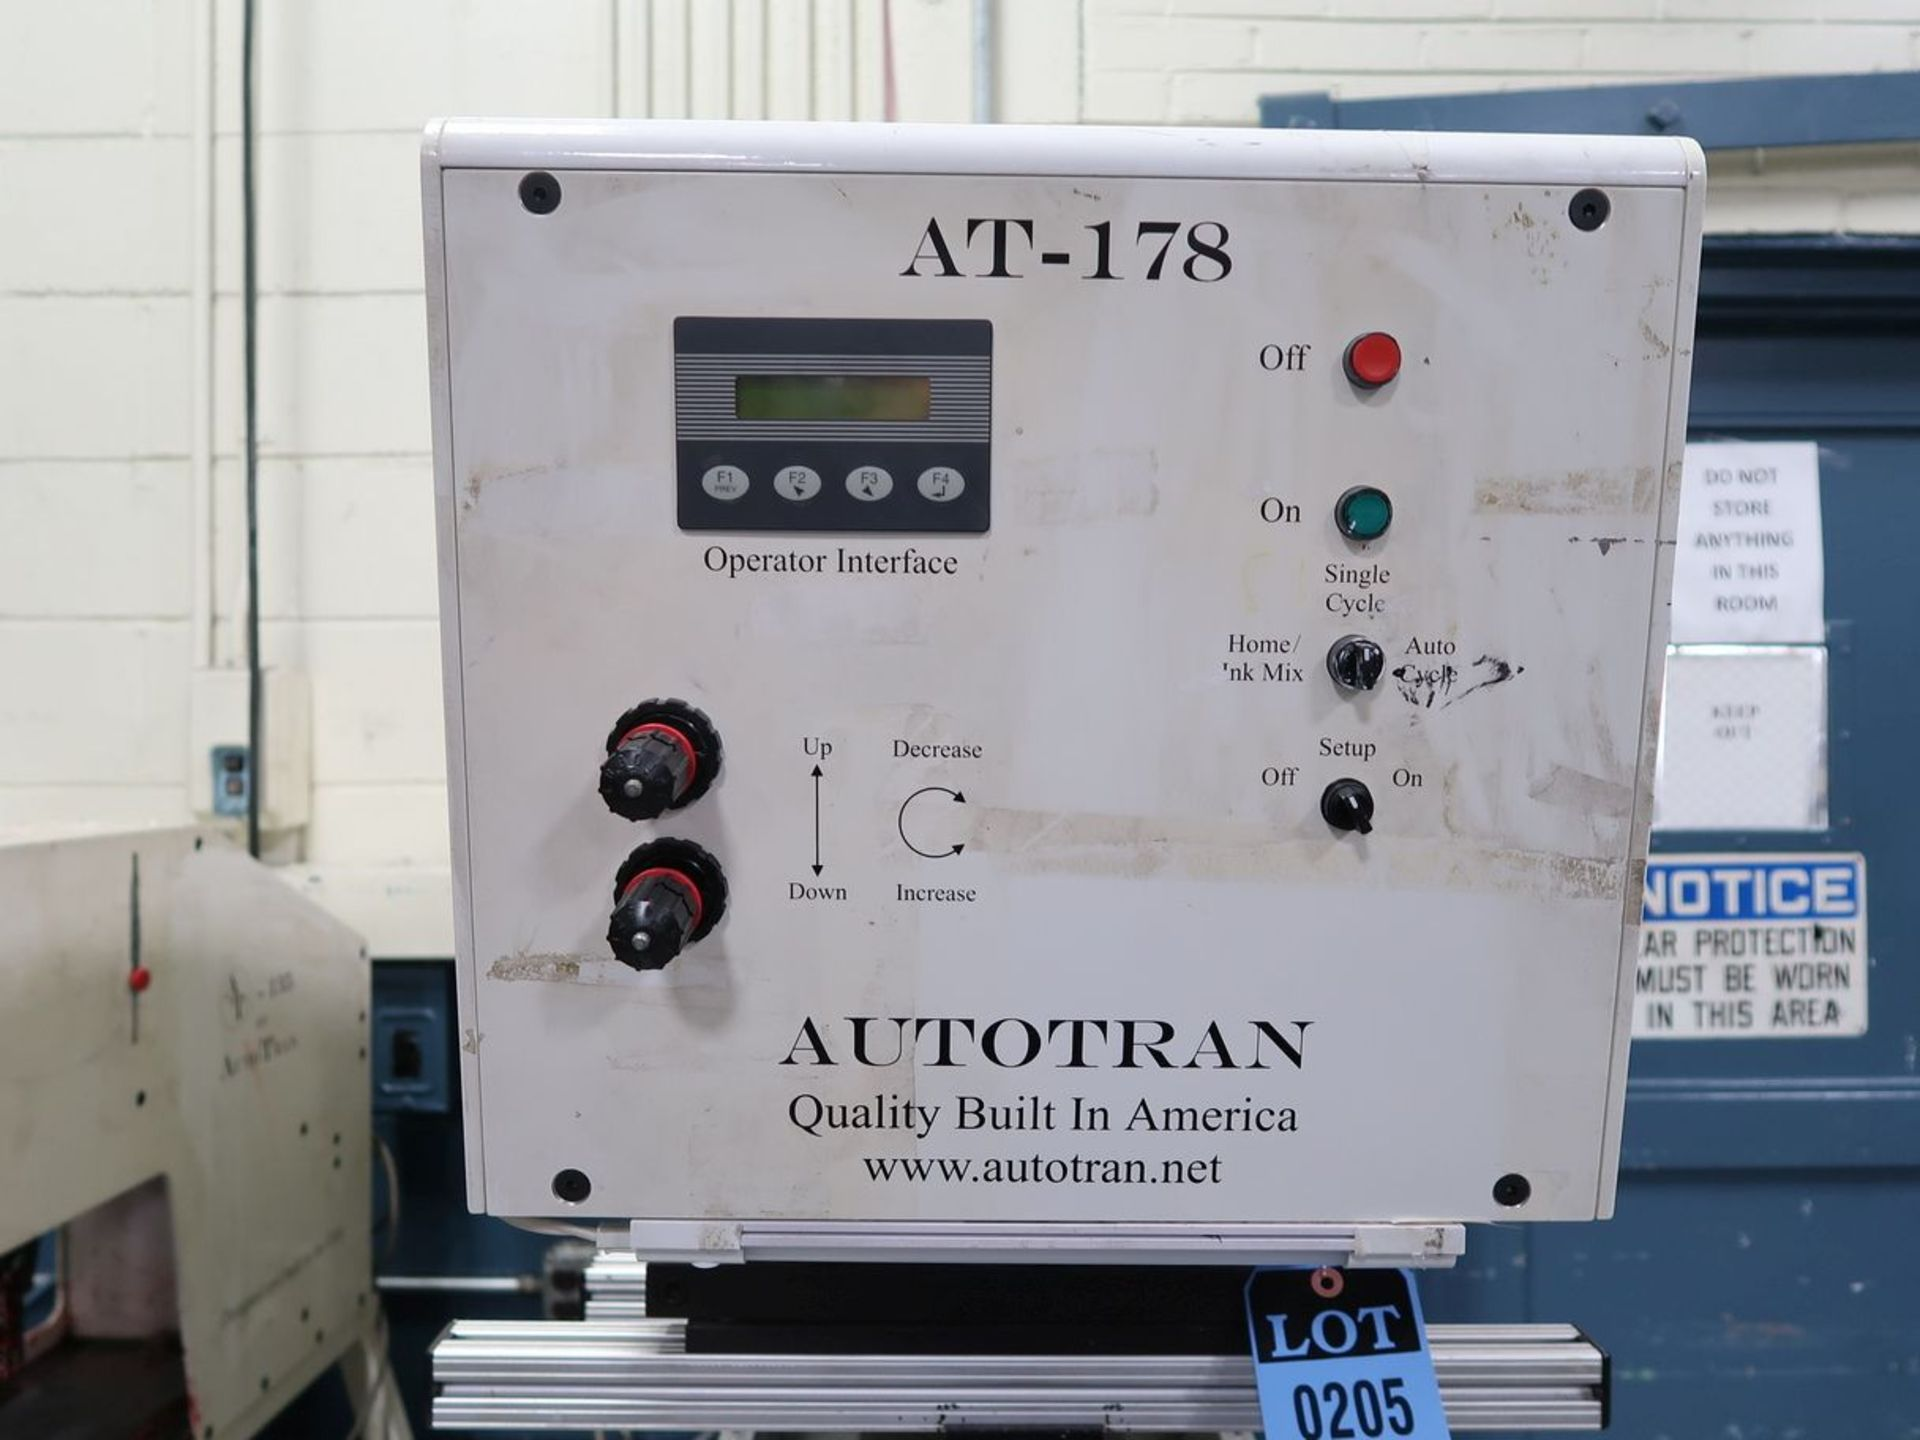 AUTO TRAN MODEL AT-178 PAD PRINTER, PENDANT CONTROL - Image 5 of 7